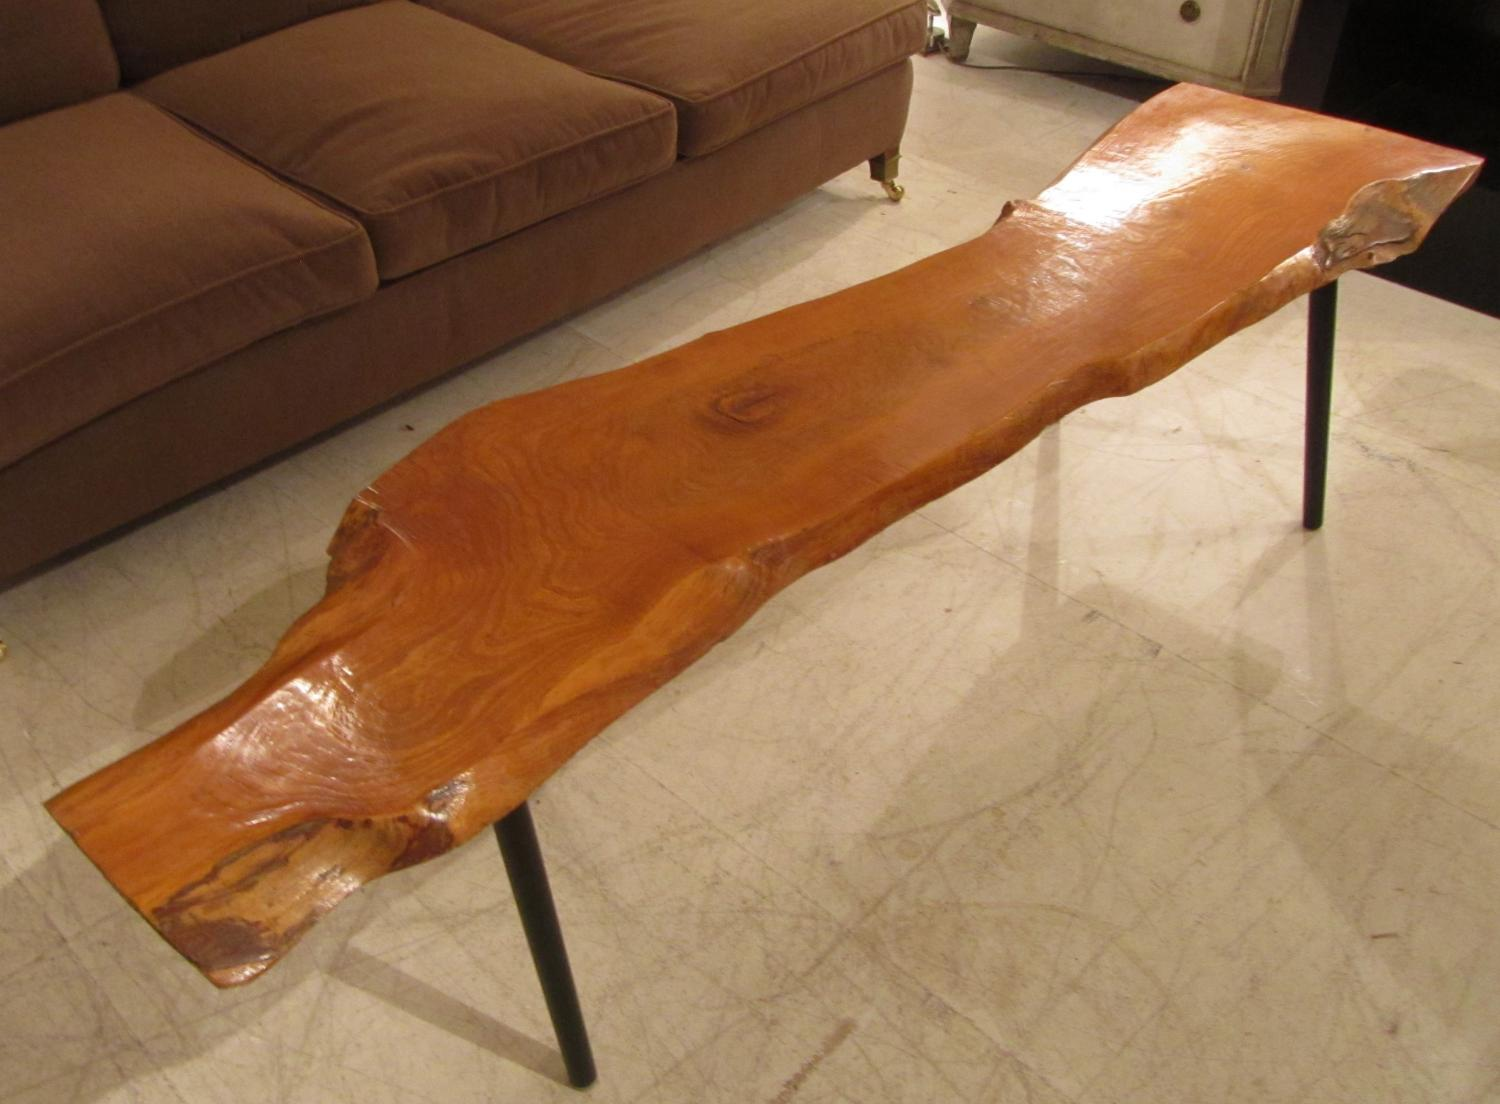 A wooden coffee table/bench